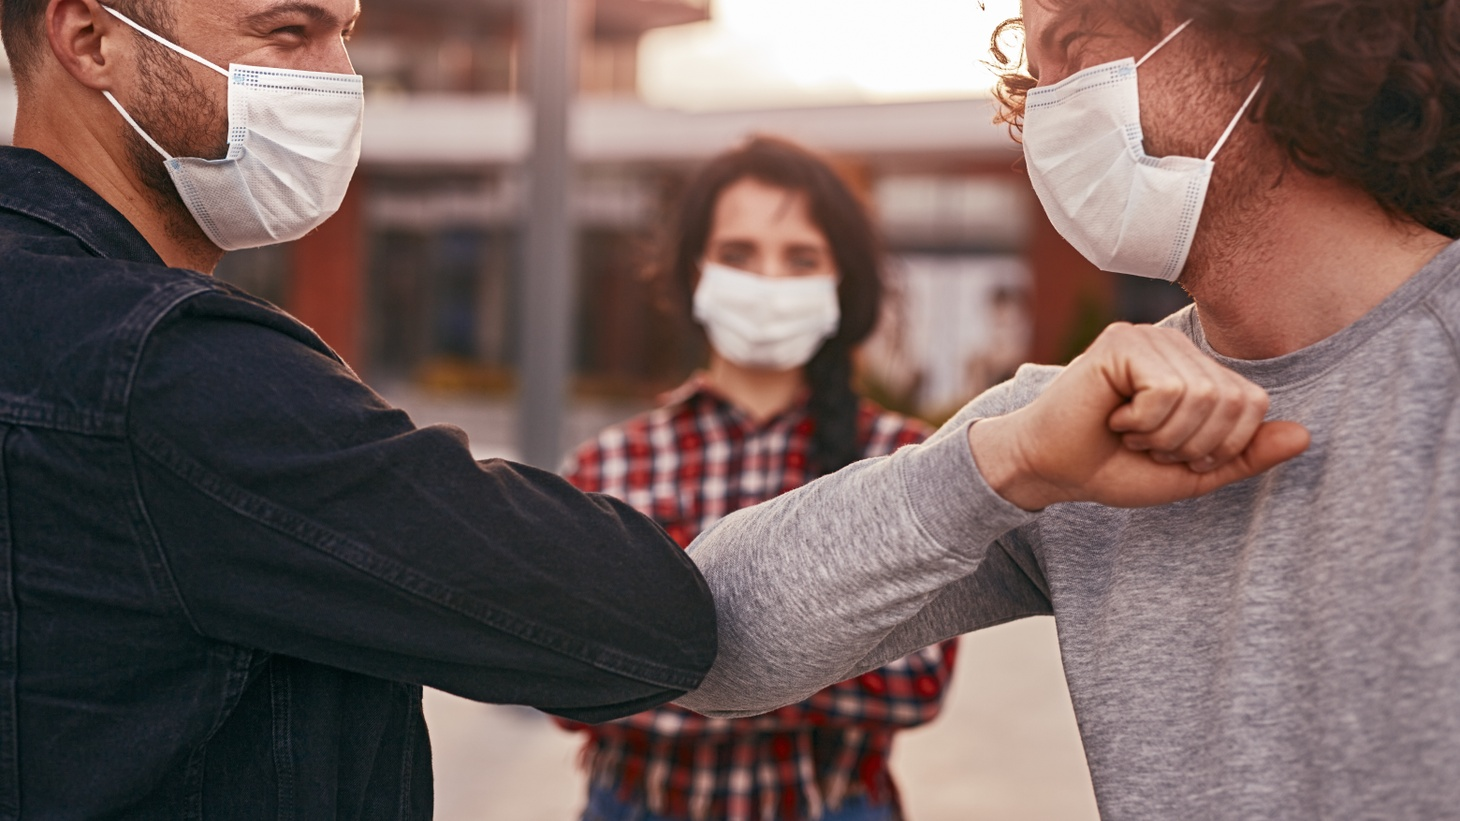 Maybe instead of handshakes or hugs, the elbow bump will become a common way to say hello even beyond the pandemic.